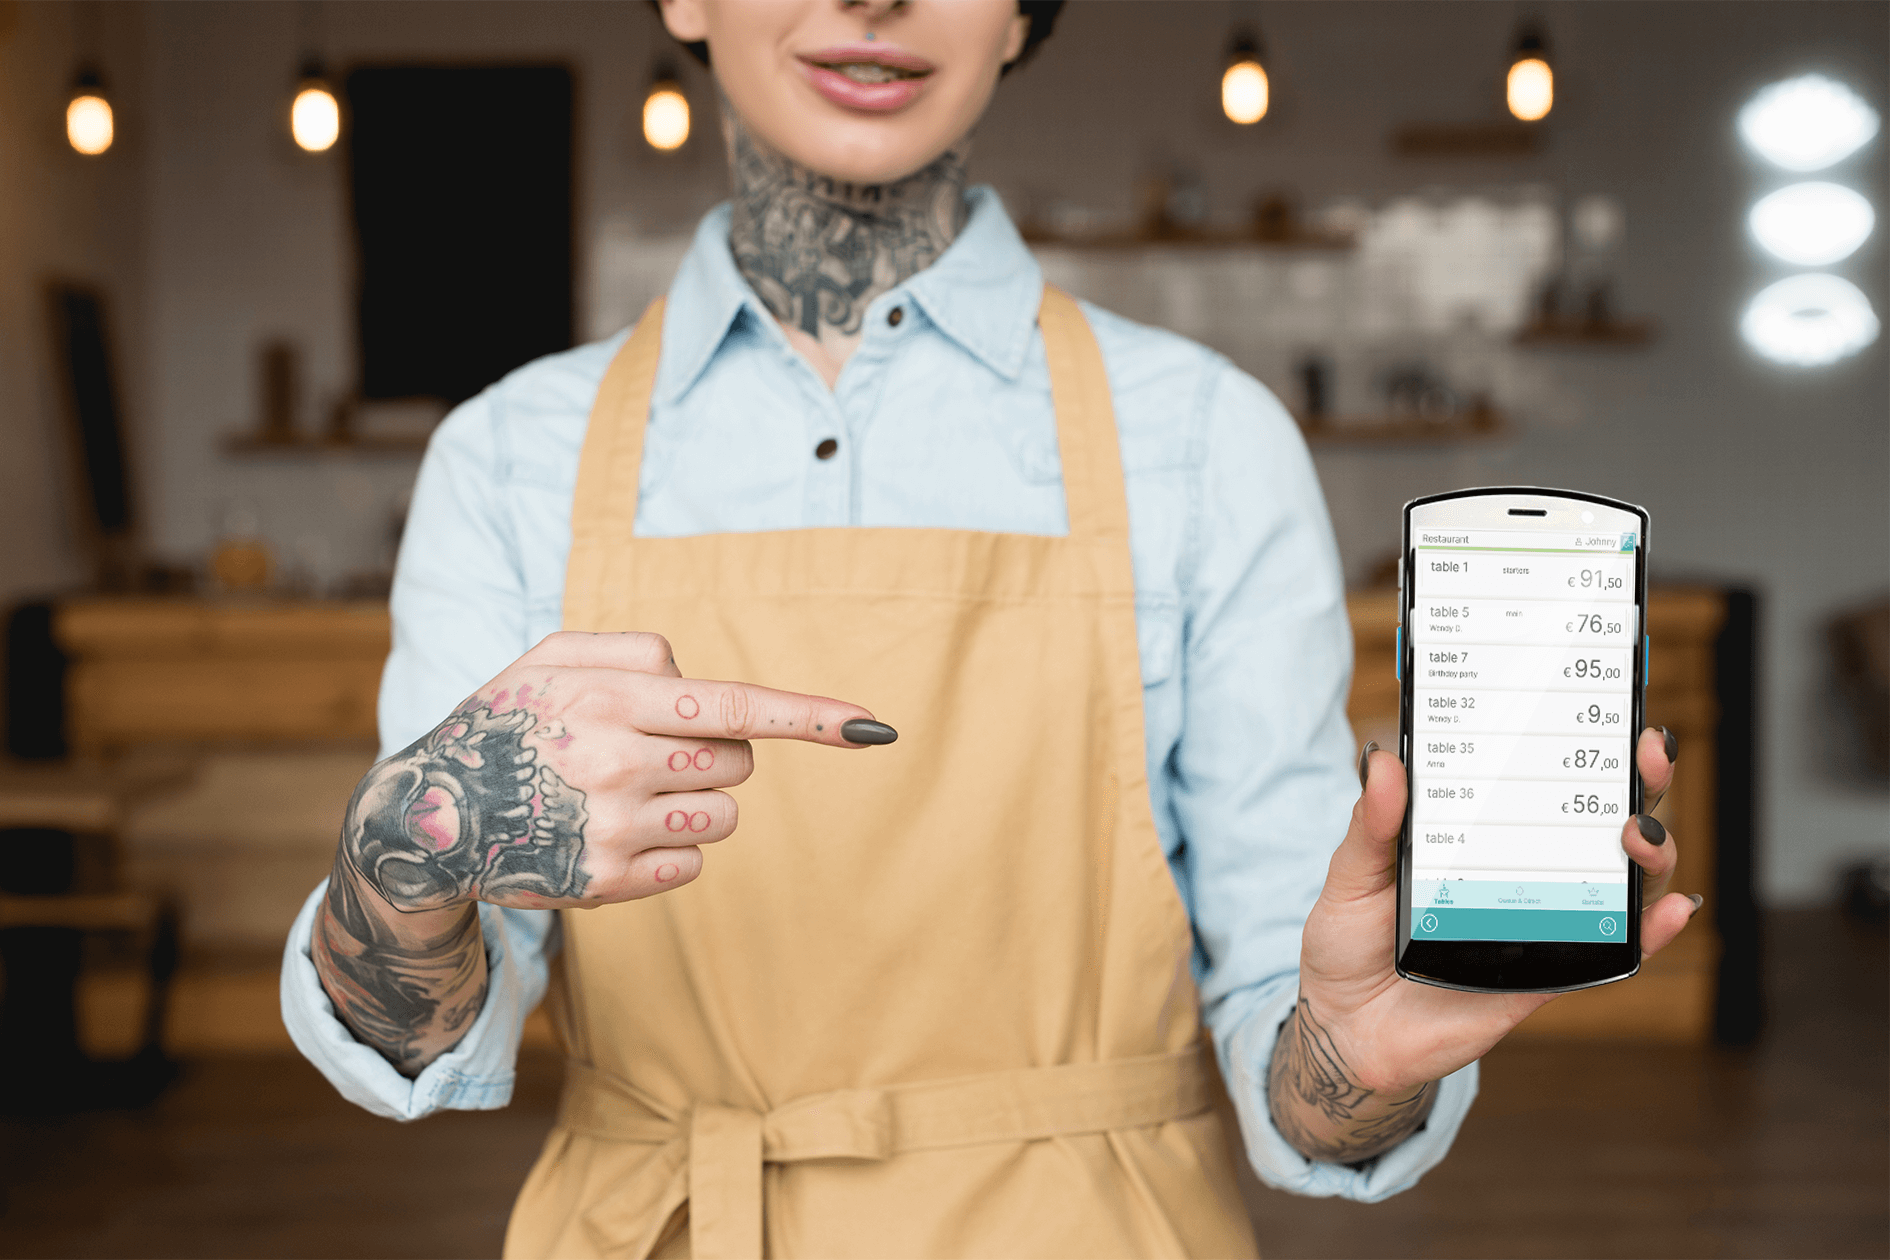 Tableside ordering